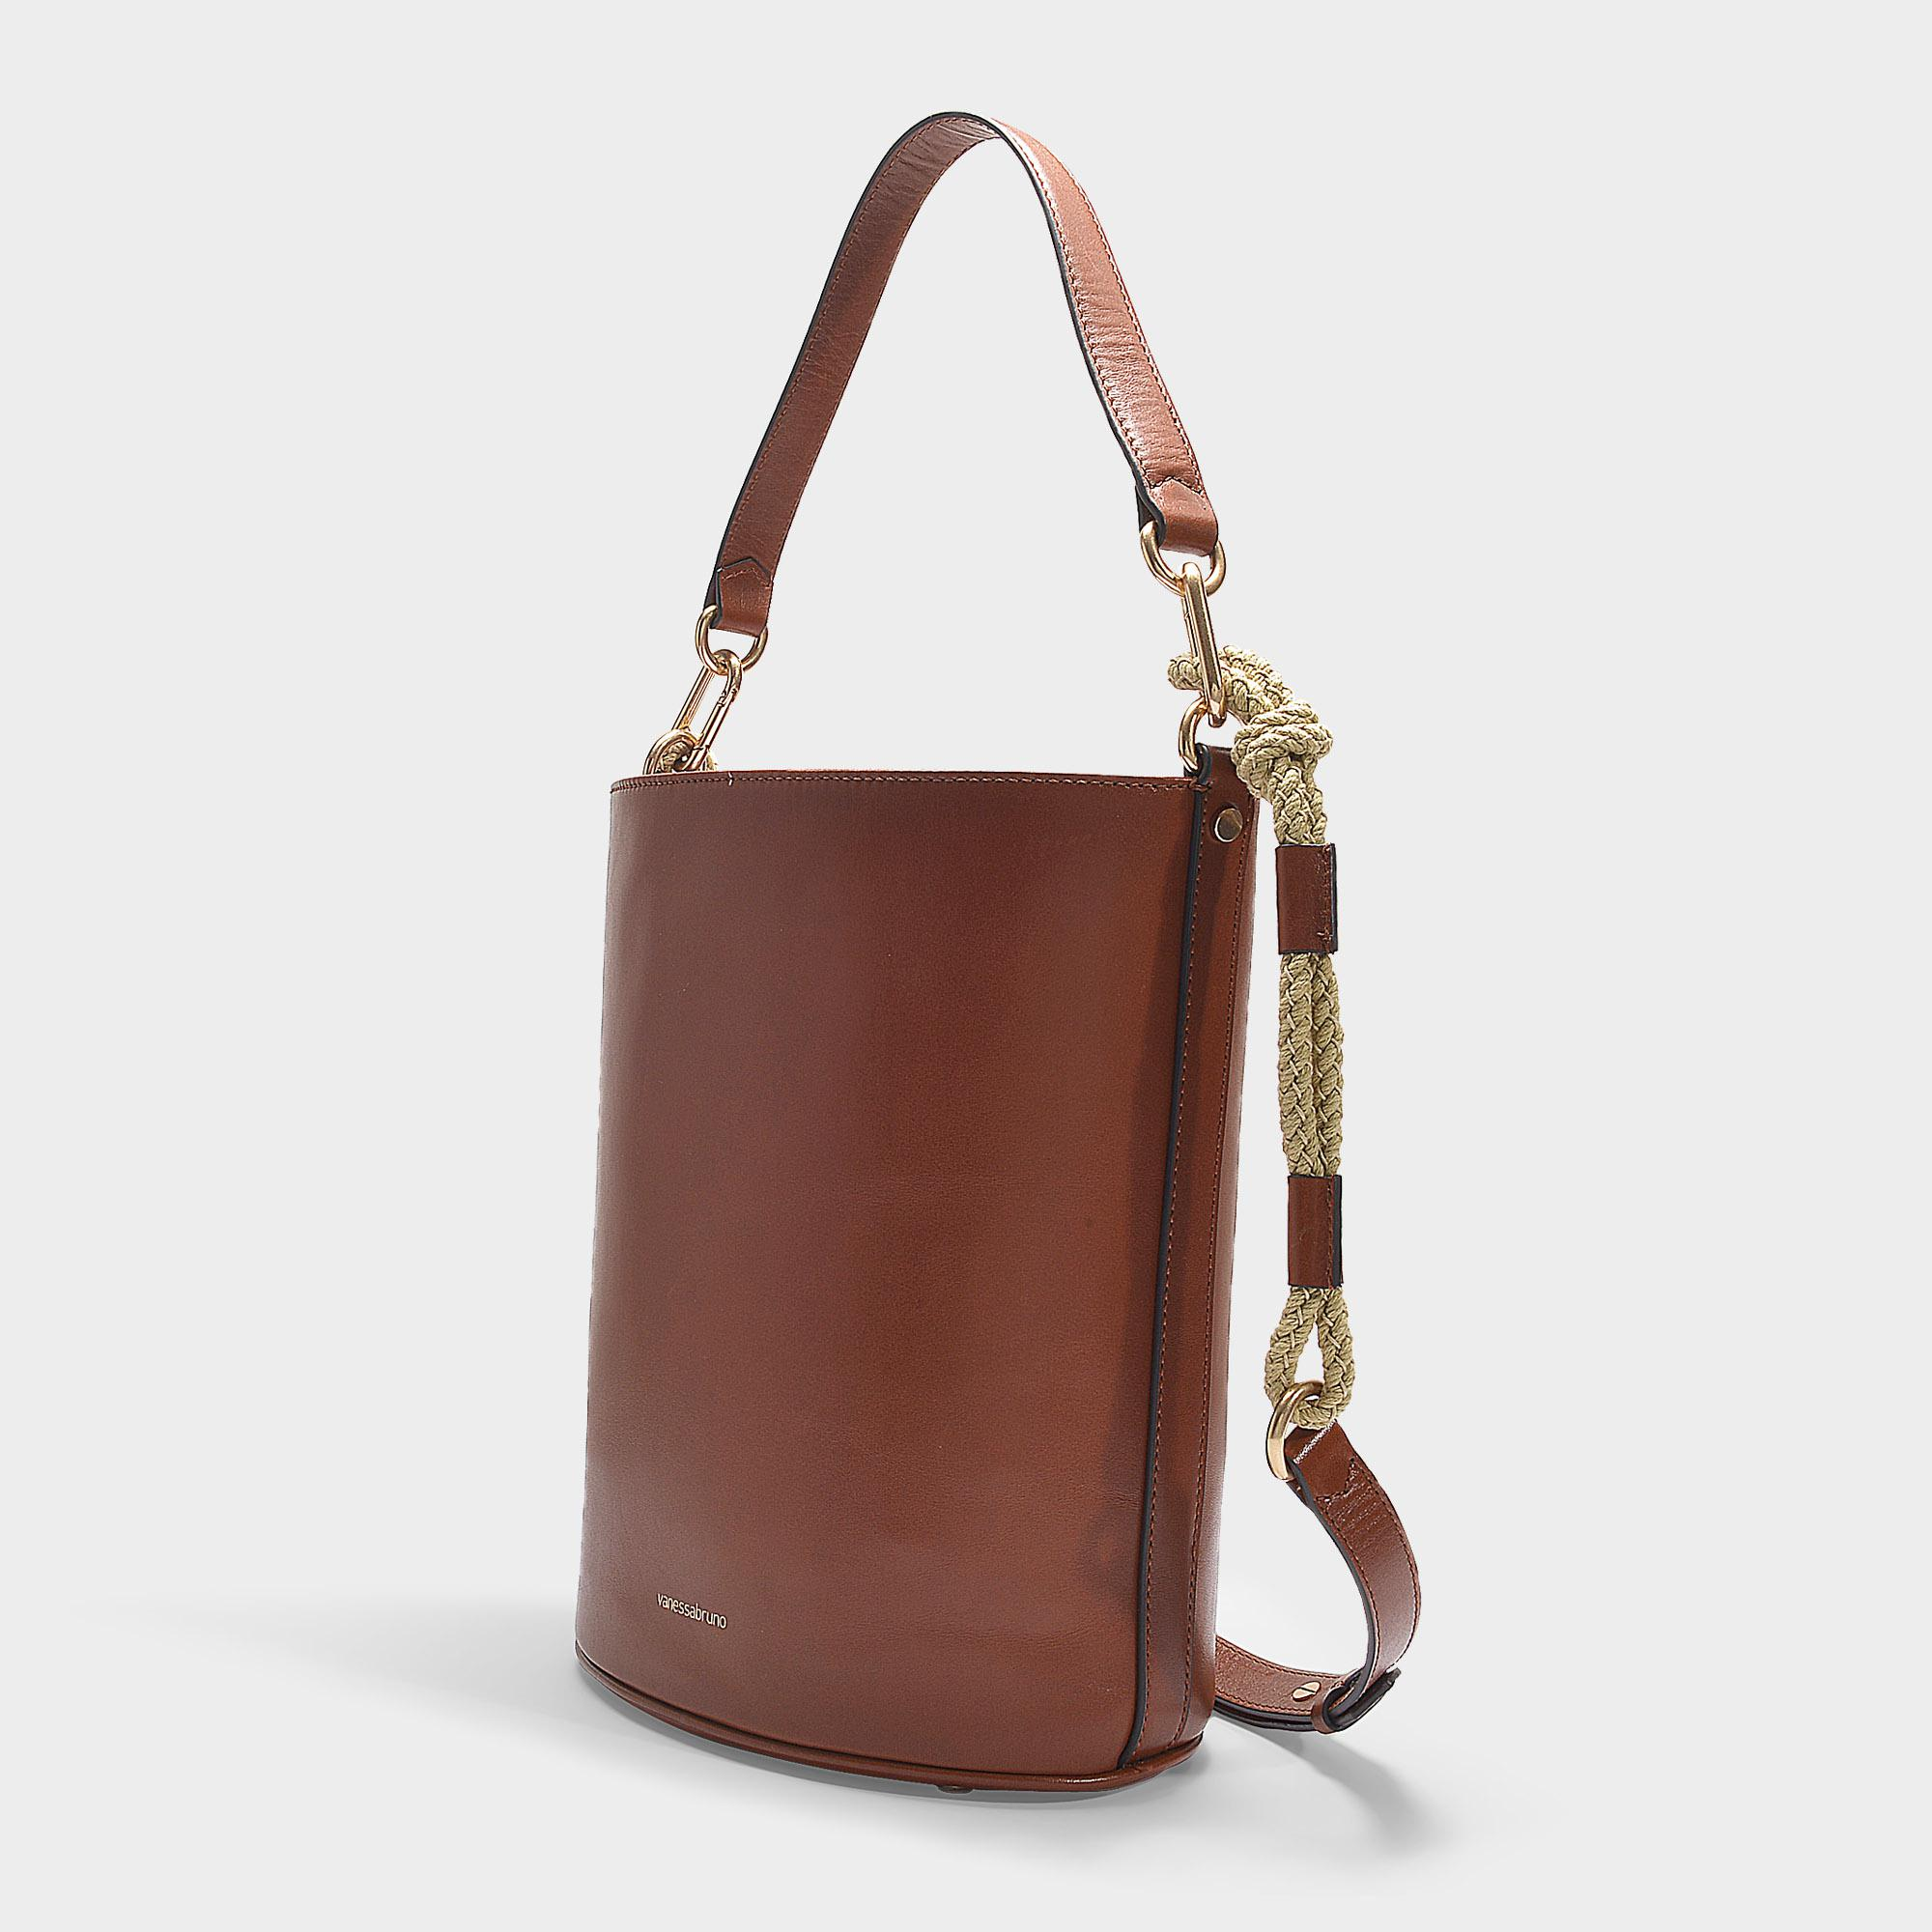 52bcbb19300f Vanessa Bruno Holly Bucket Bag In Brown Leather in Brown - Lyst